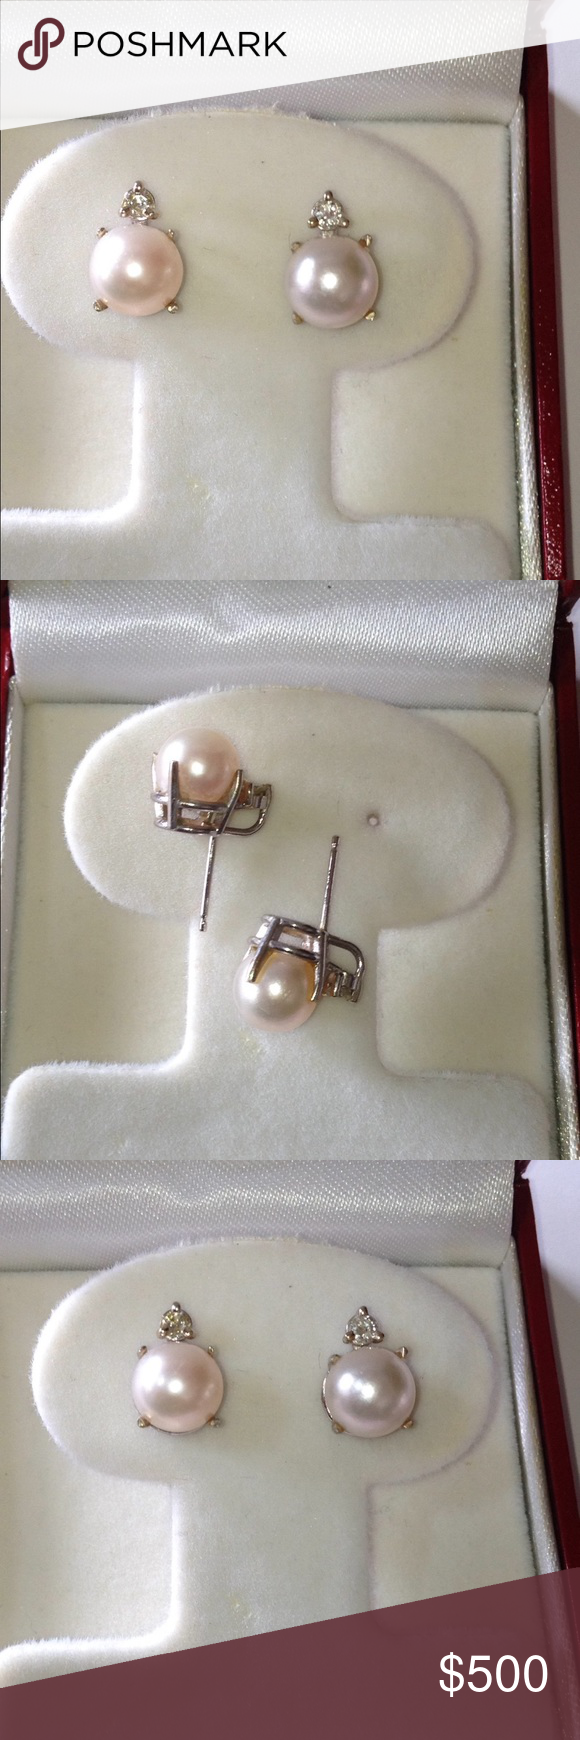 Vintage 14K White Gold 8mm Pearl Diamond Earrings Beautiful vintage stud Pearl and Diamond earrings. 14K stamped White Gold. Weigh 2.0 DWT. Include 2 Cultured Pearls, each measuring about 8mm. Pearls have a medium luster. 2 round brilliant cut genuine Diamonds, total .10 carat weight, H color, SI1 clarity. Each earring had a round Pearl set in 4 prong setting with a 3 prong set Diamond at the top.  No backings. Normal wear commensurate with age. Perfect wedding, formal, birthstone earrings…